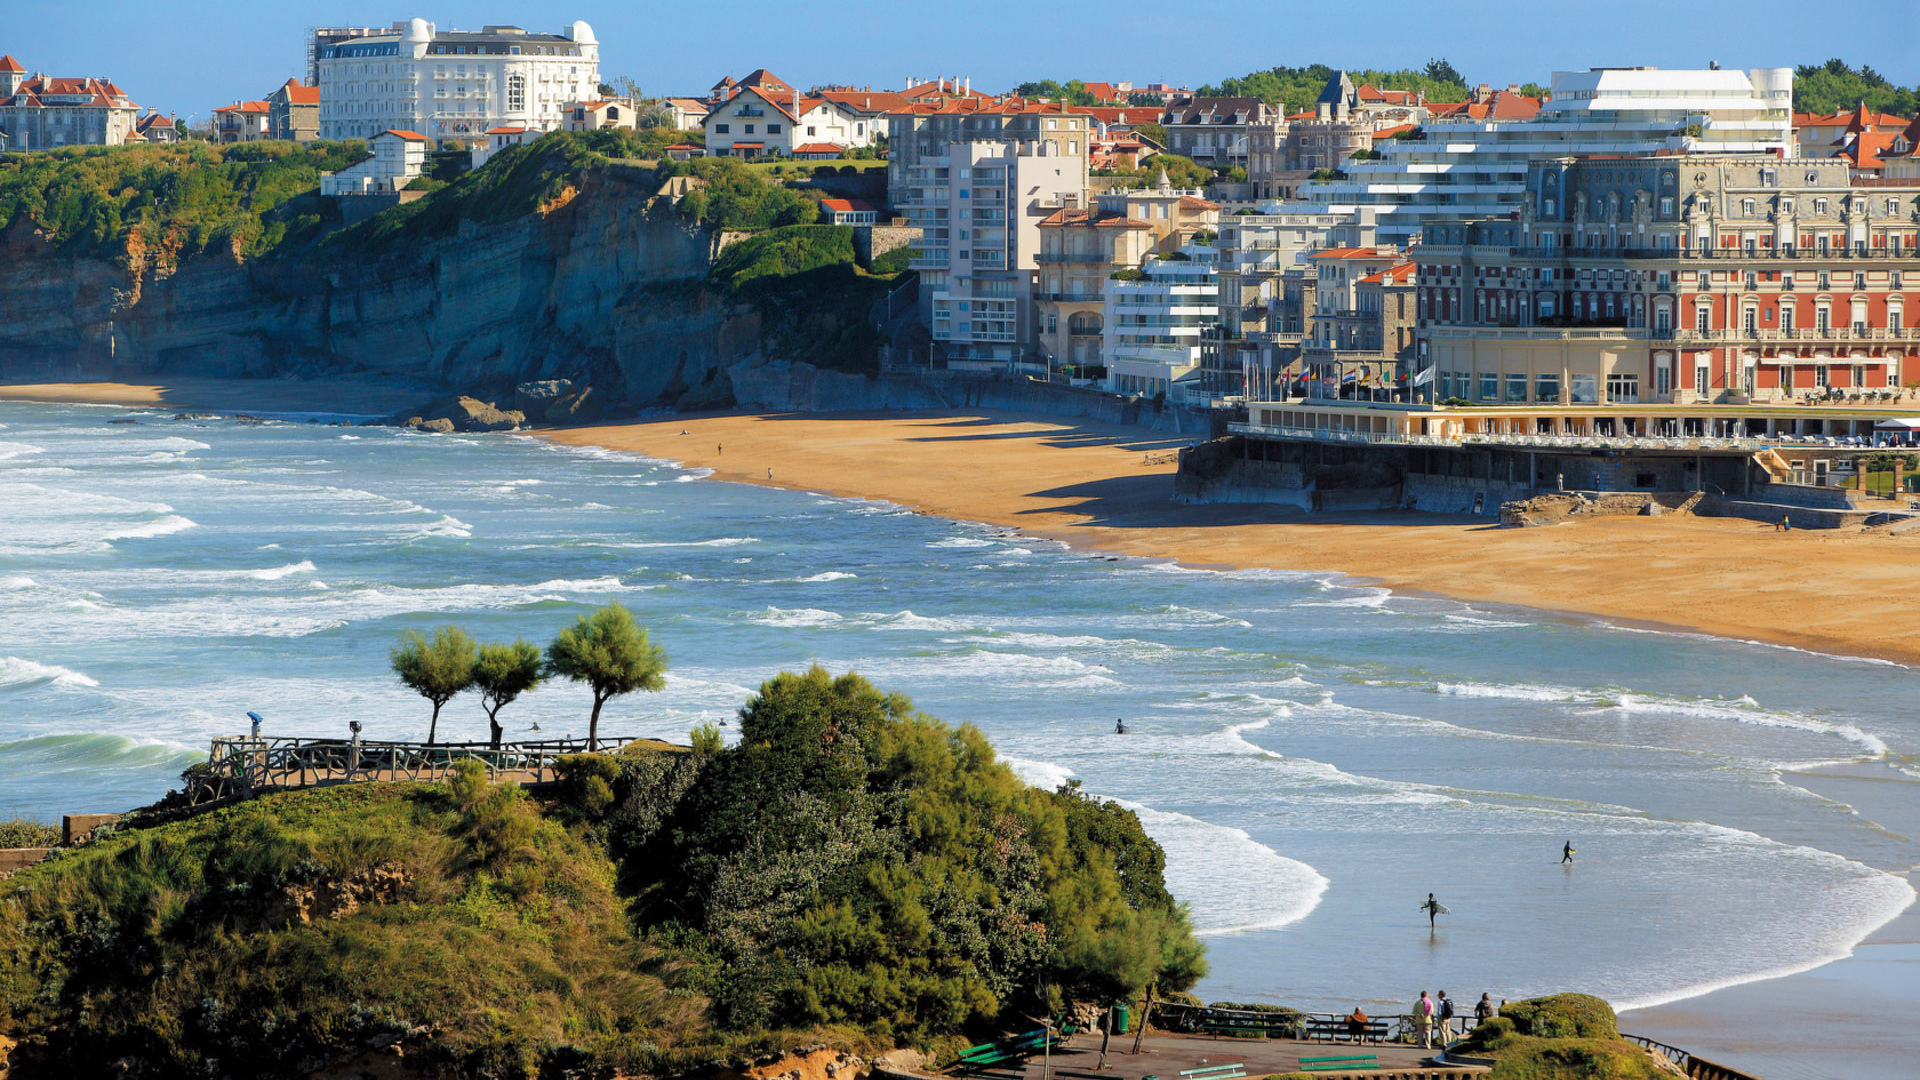 Biarritz Basque Country France world cities architecture buildings resort nature beaches ocean sea harbor waves surf trees vacation travel